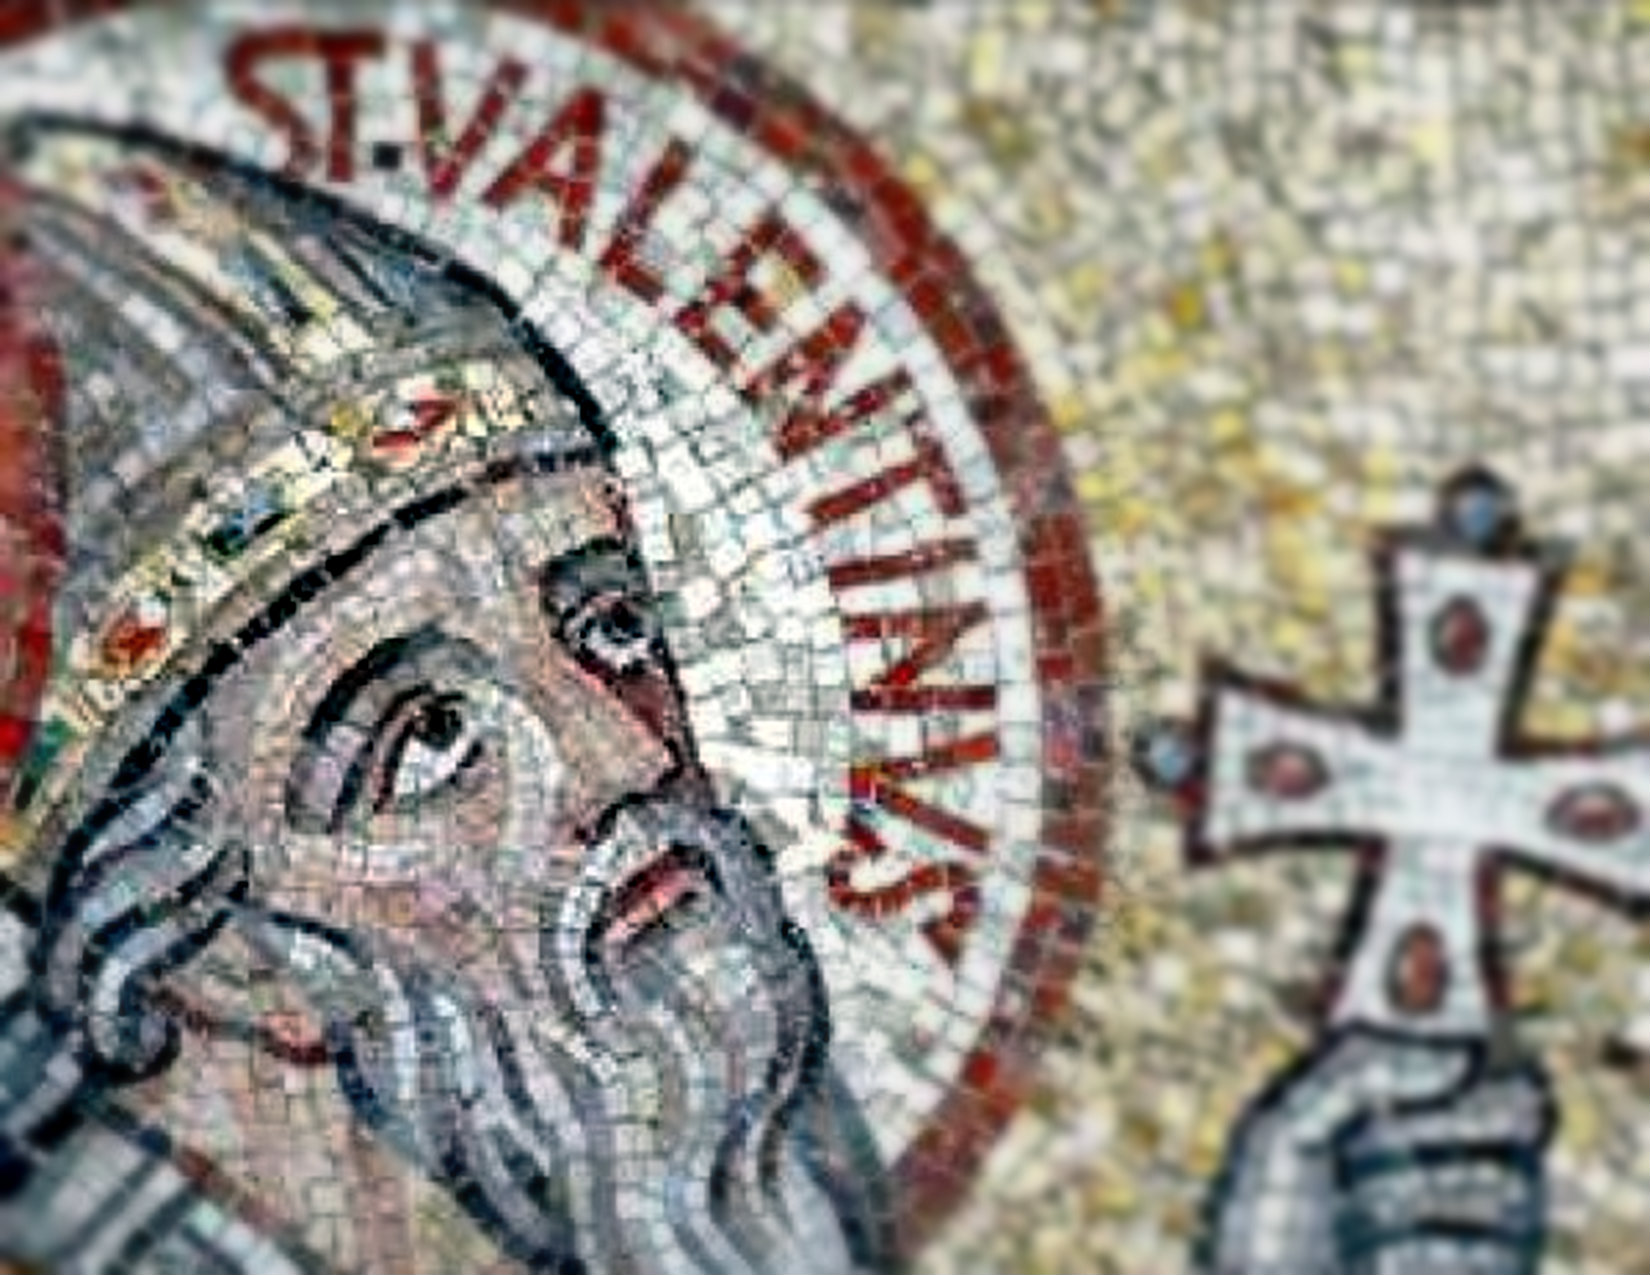 St Valentine Church Tradition Records That In The Year 269 Or 270 AD (the  Historical Record Is Unclear), A Young Man Living In The Roman Empire Saw  ...